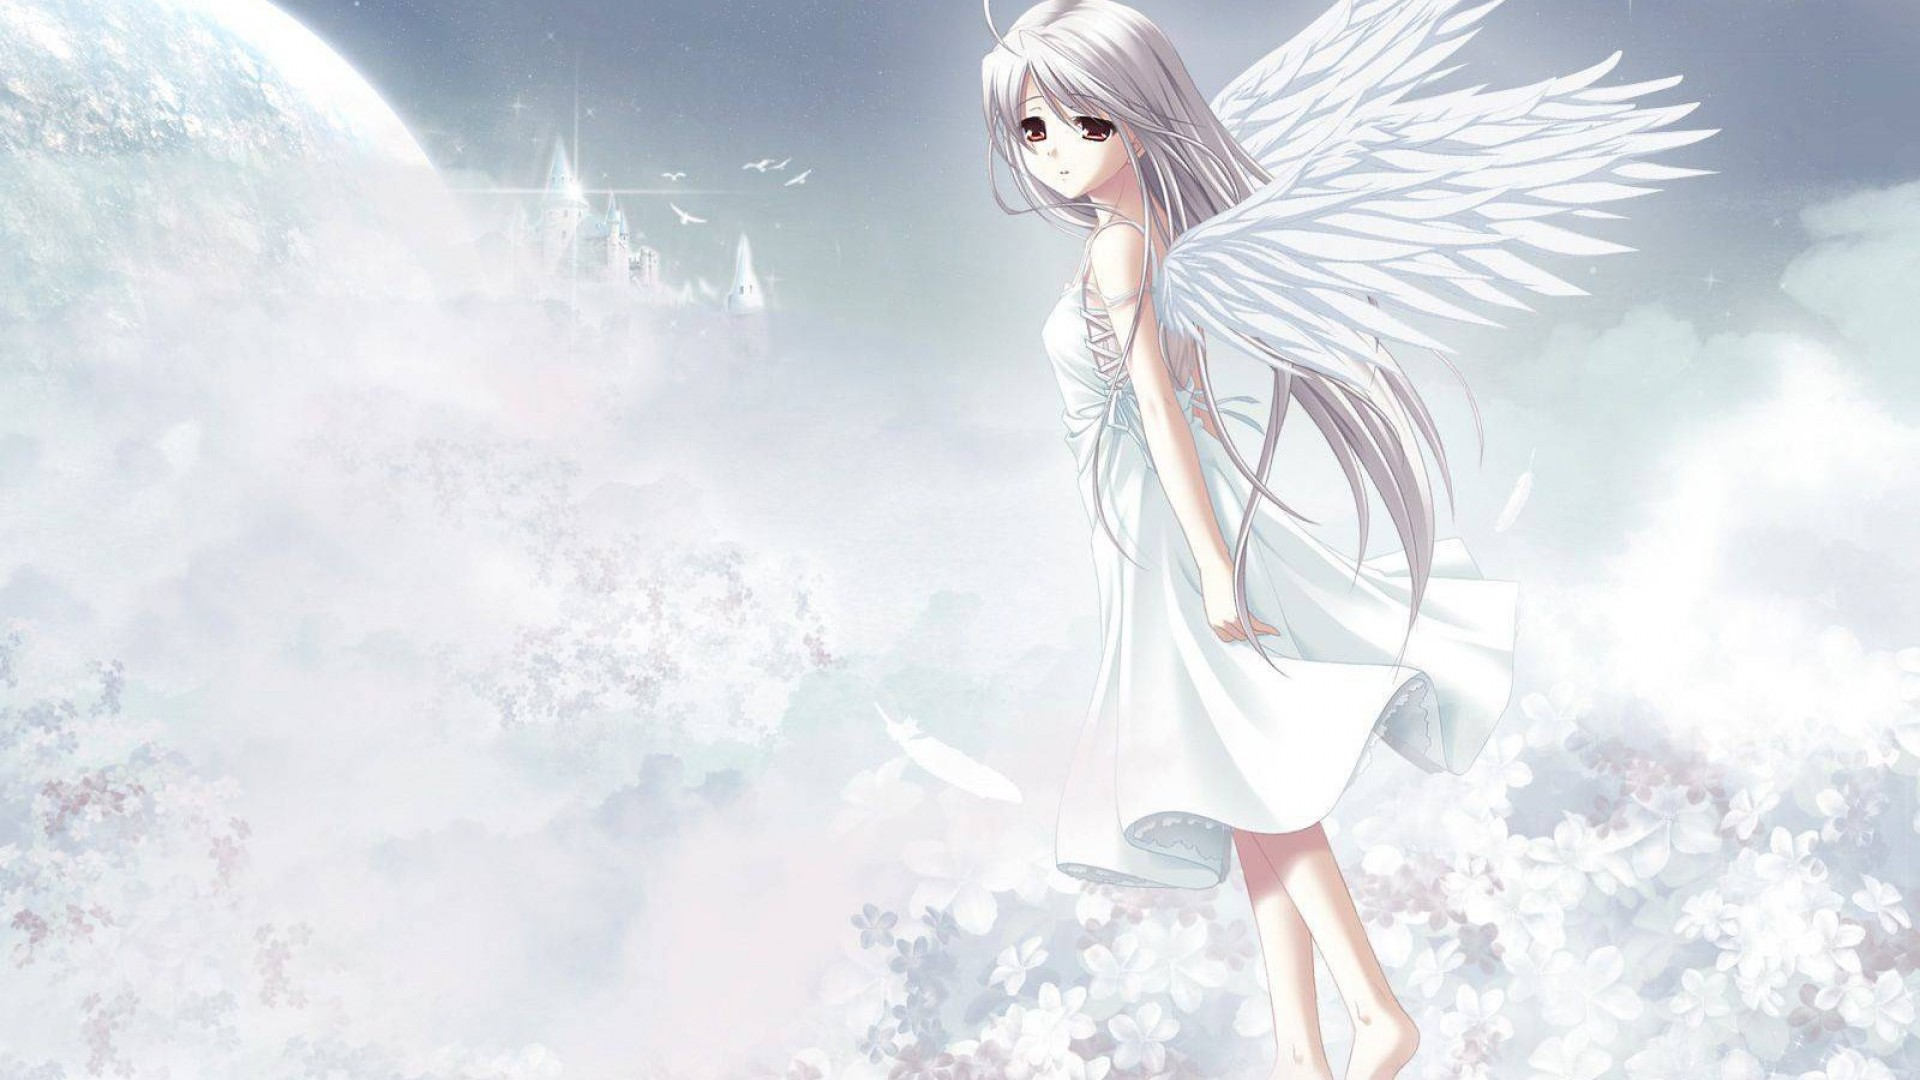 Cute Anime Angel Girl HD Wallpaper   Stylish HD Wallpapers 1920x1080